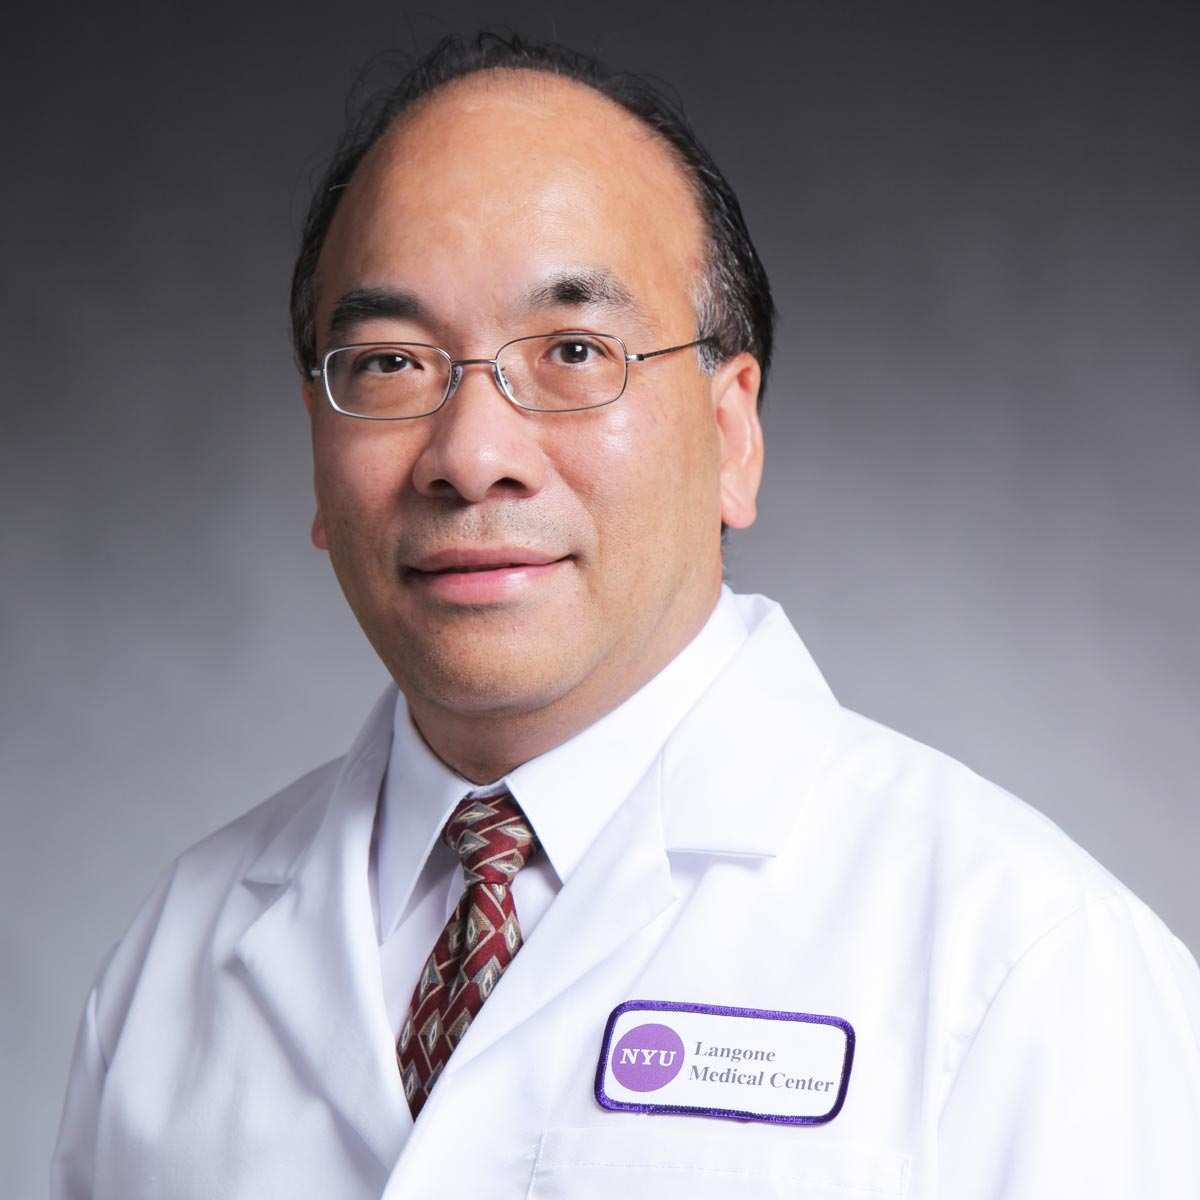 Thomas Chan at [NYU Langone Medical Center]